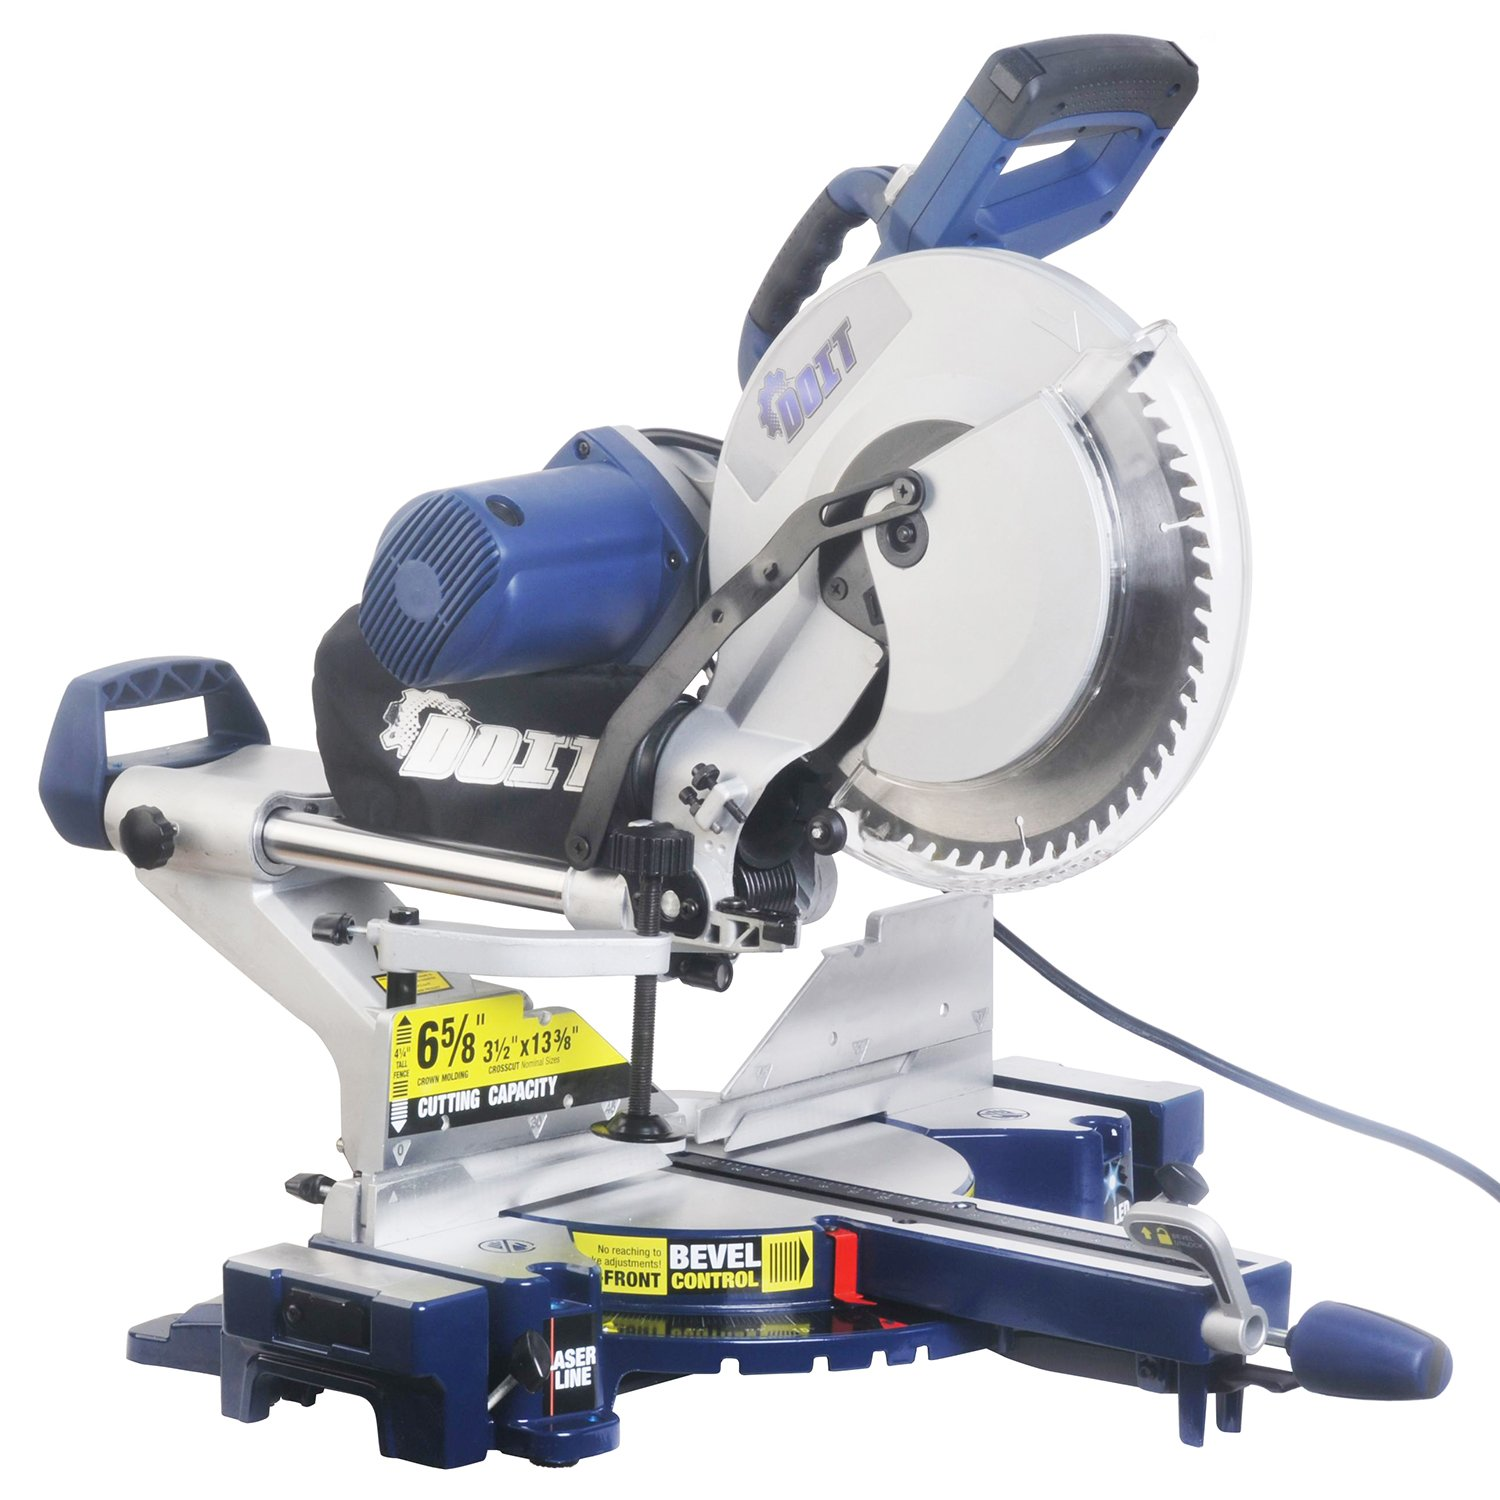 Doitpower 12-Inch Dual Bevel Sliding Compound Miter Saw with Laser and LED Work Light